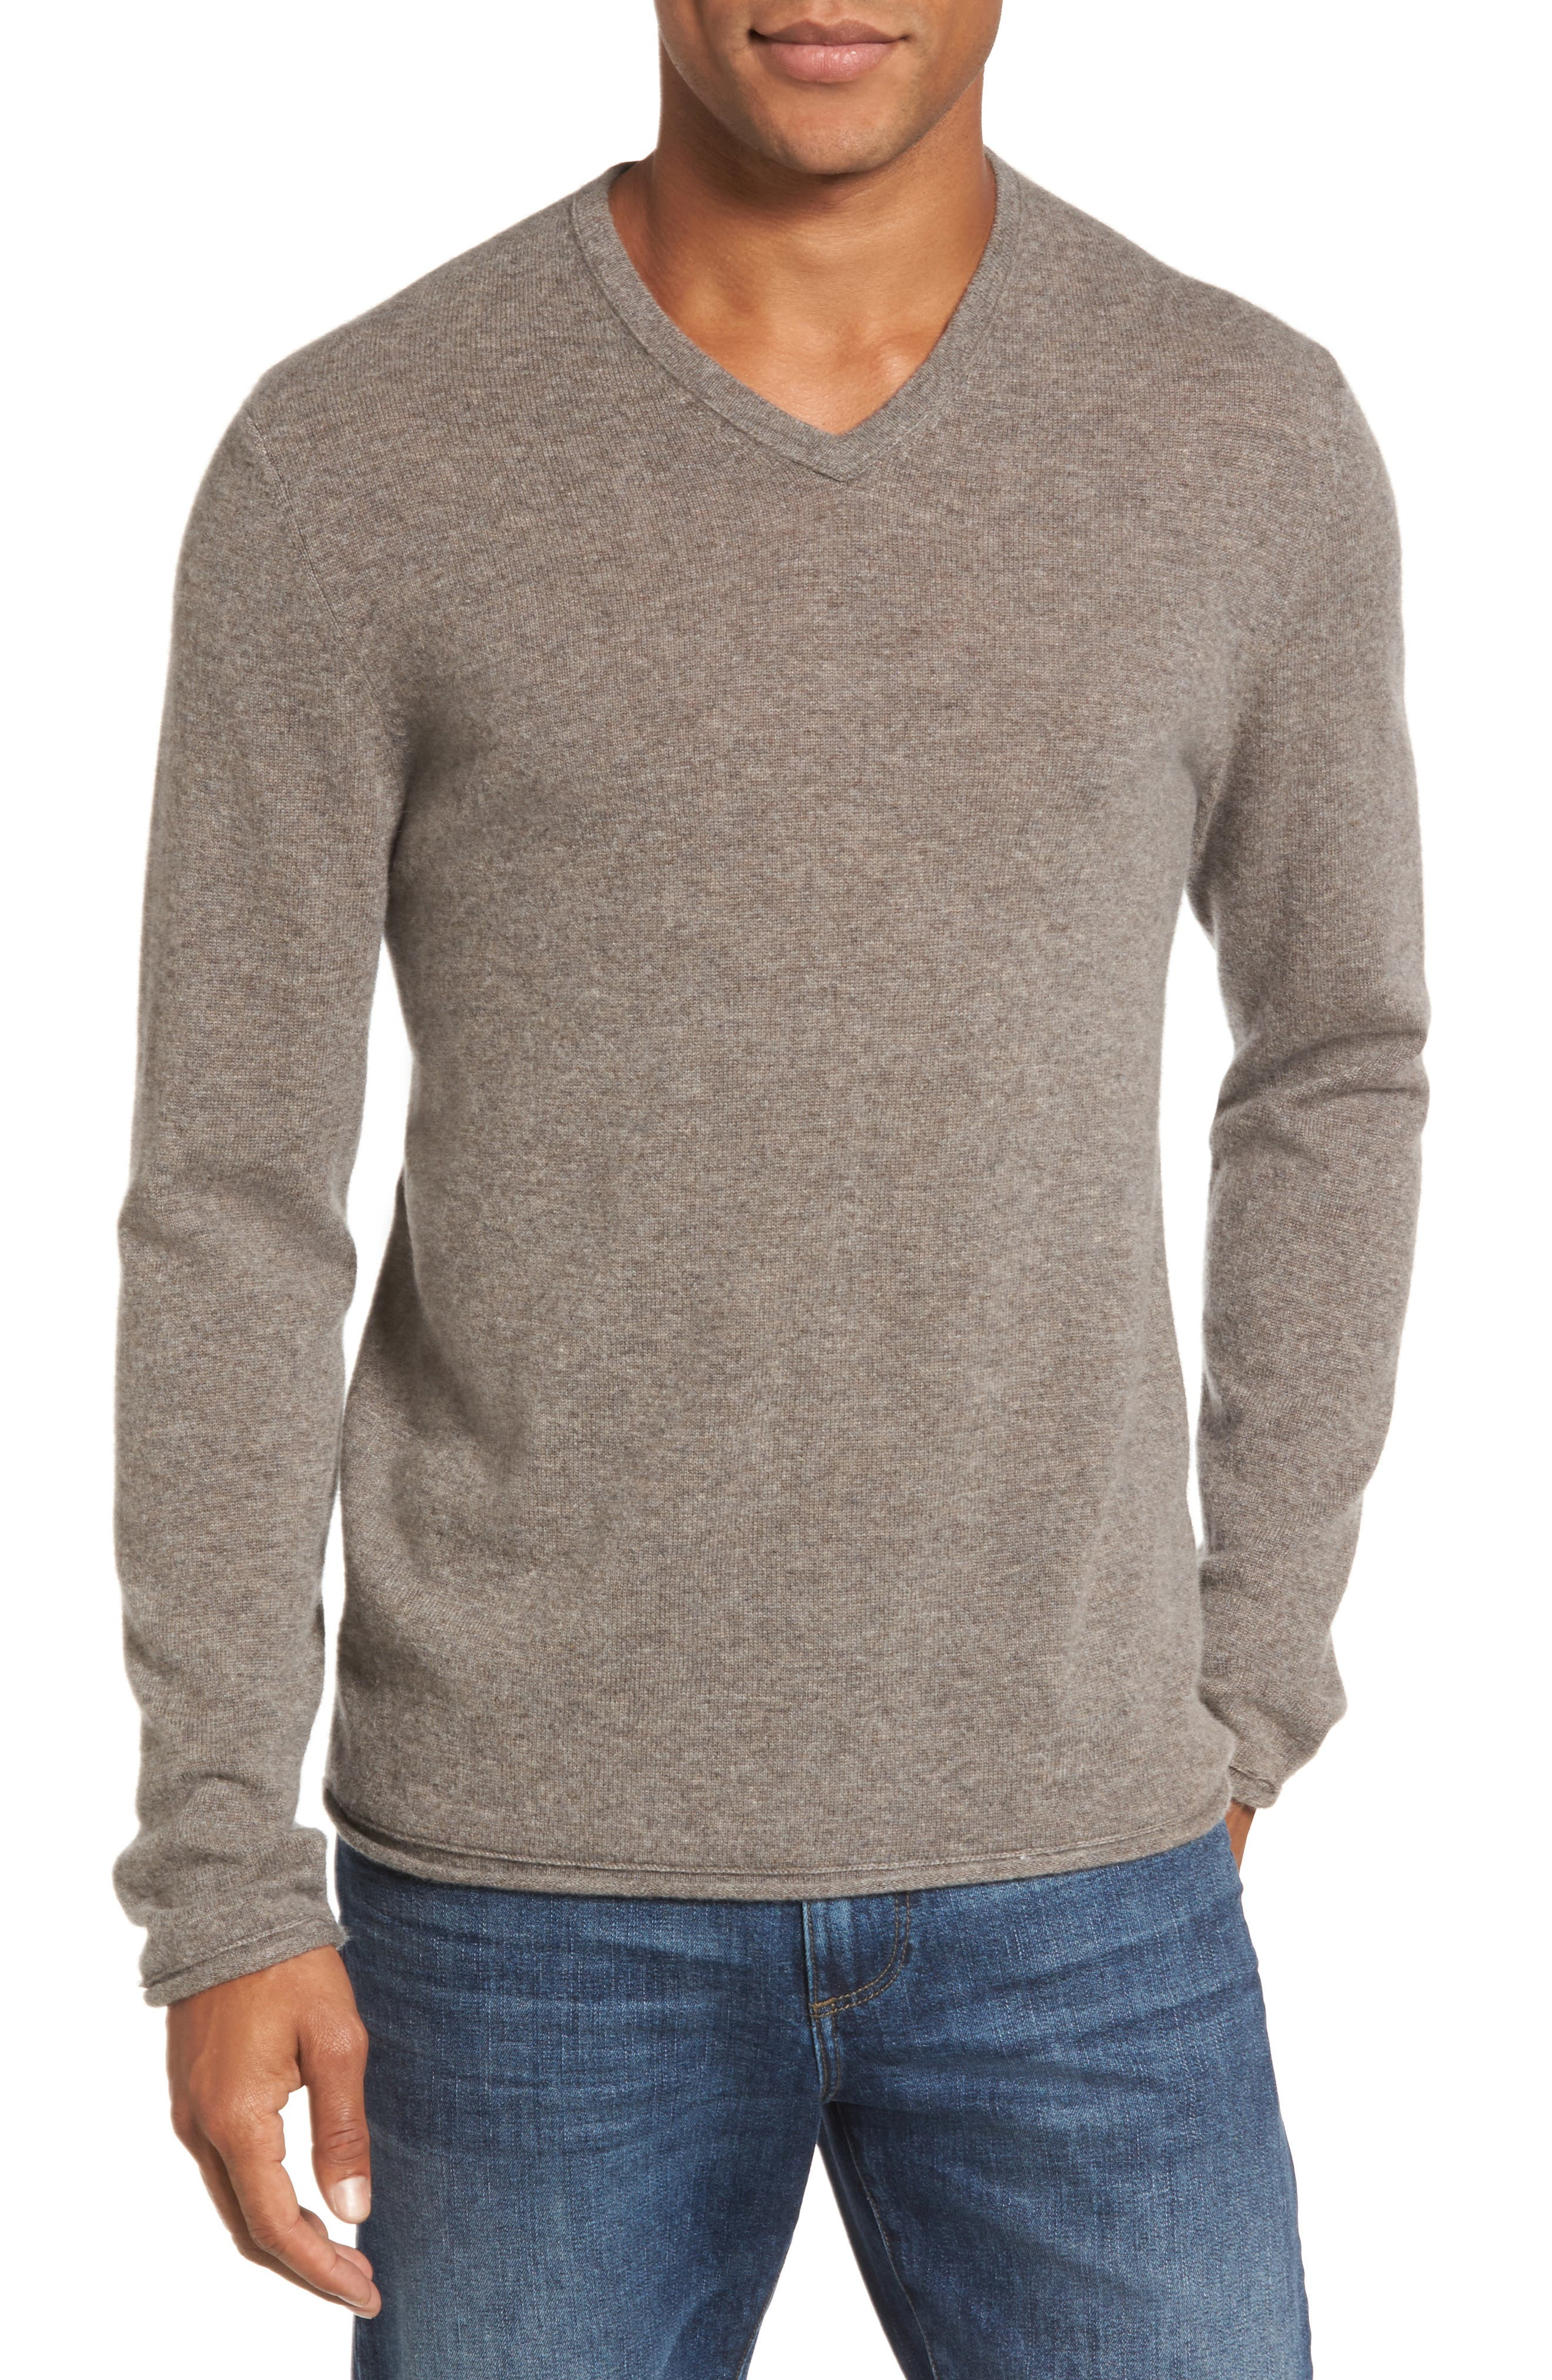 James Perse Classic Cashmere V-Neck Sweater